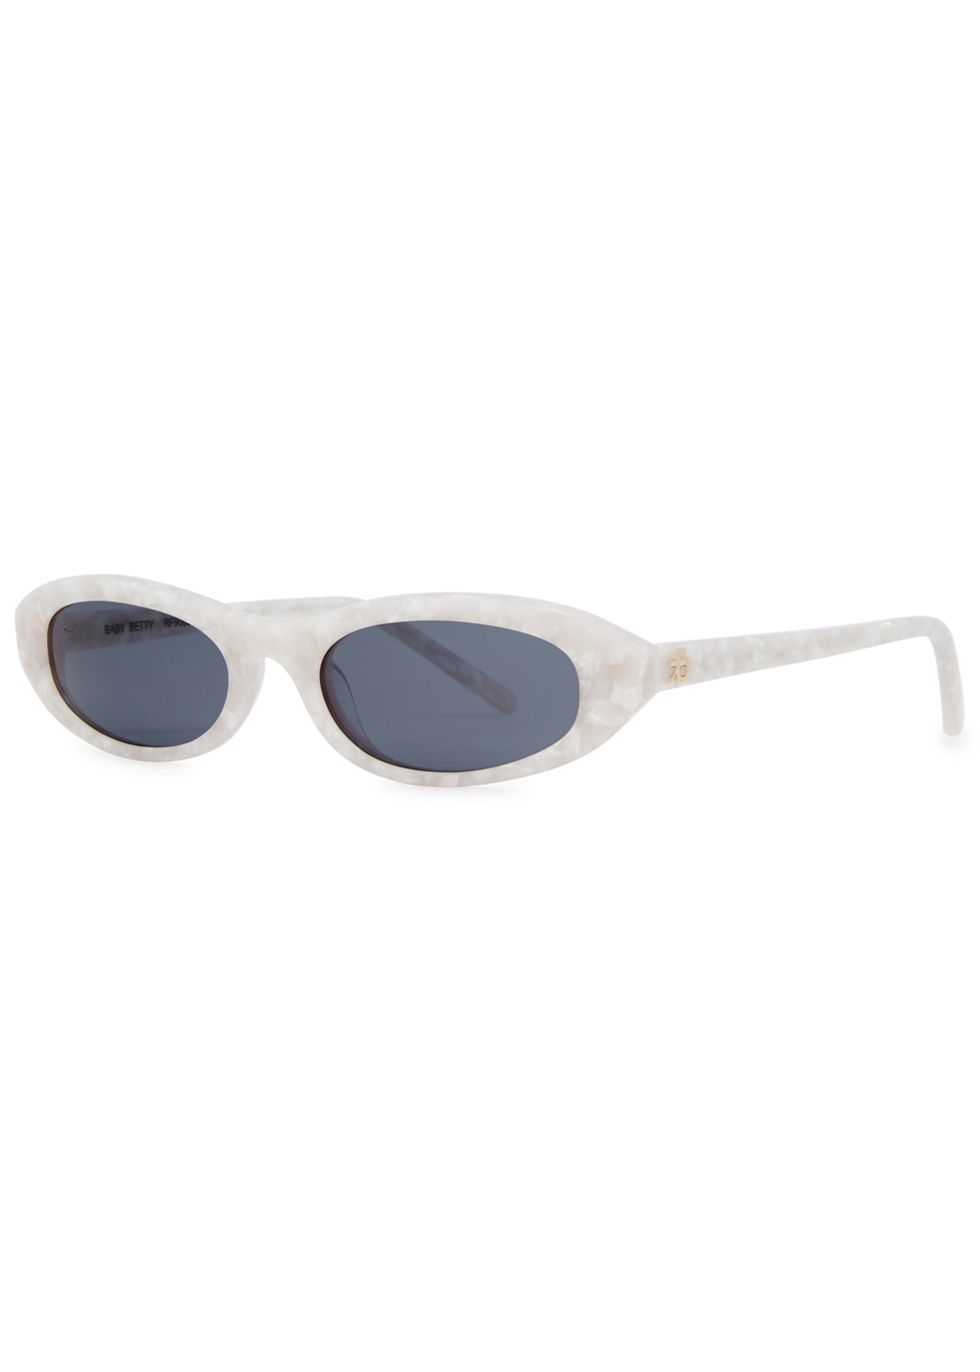 7a523a604b ROBERI AND FRAUD Baby Betty oval-frame sunglasses - Harvey Nichols